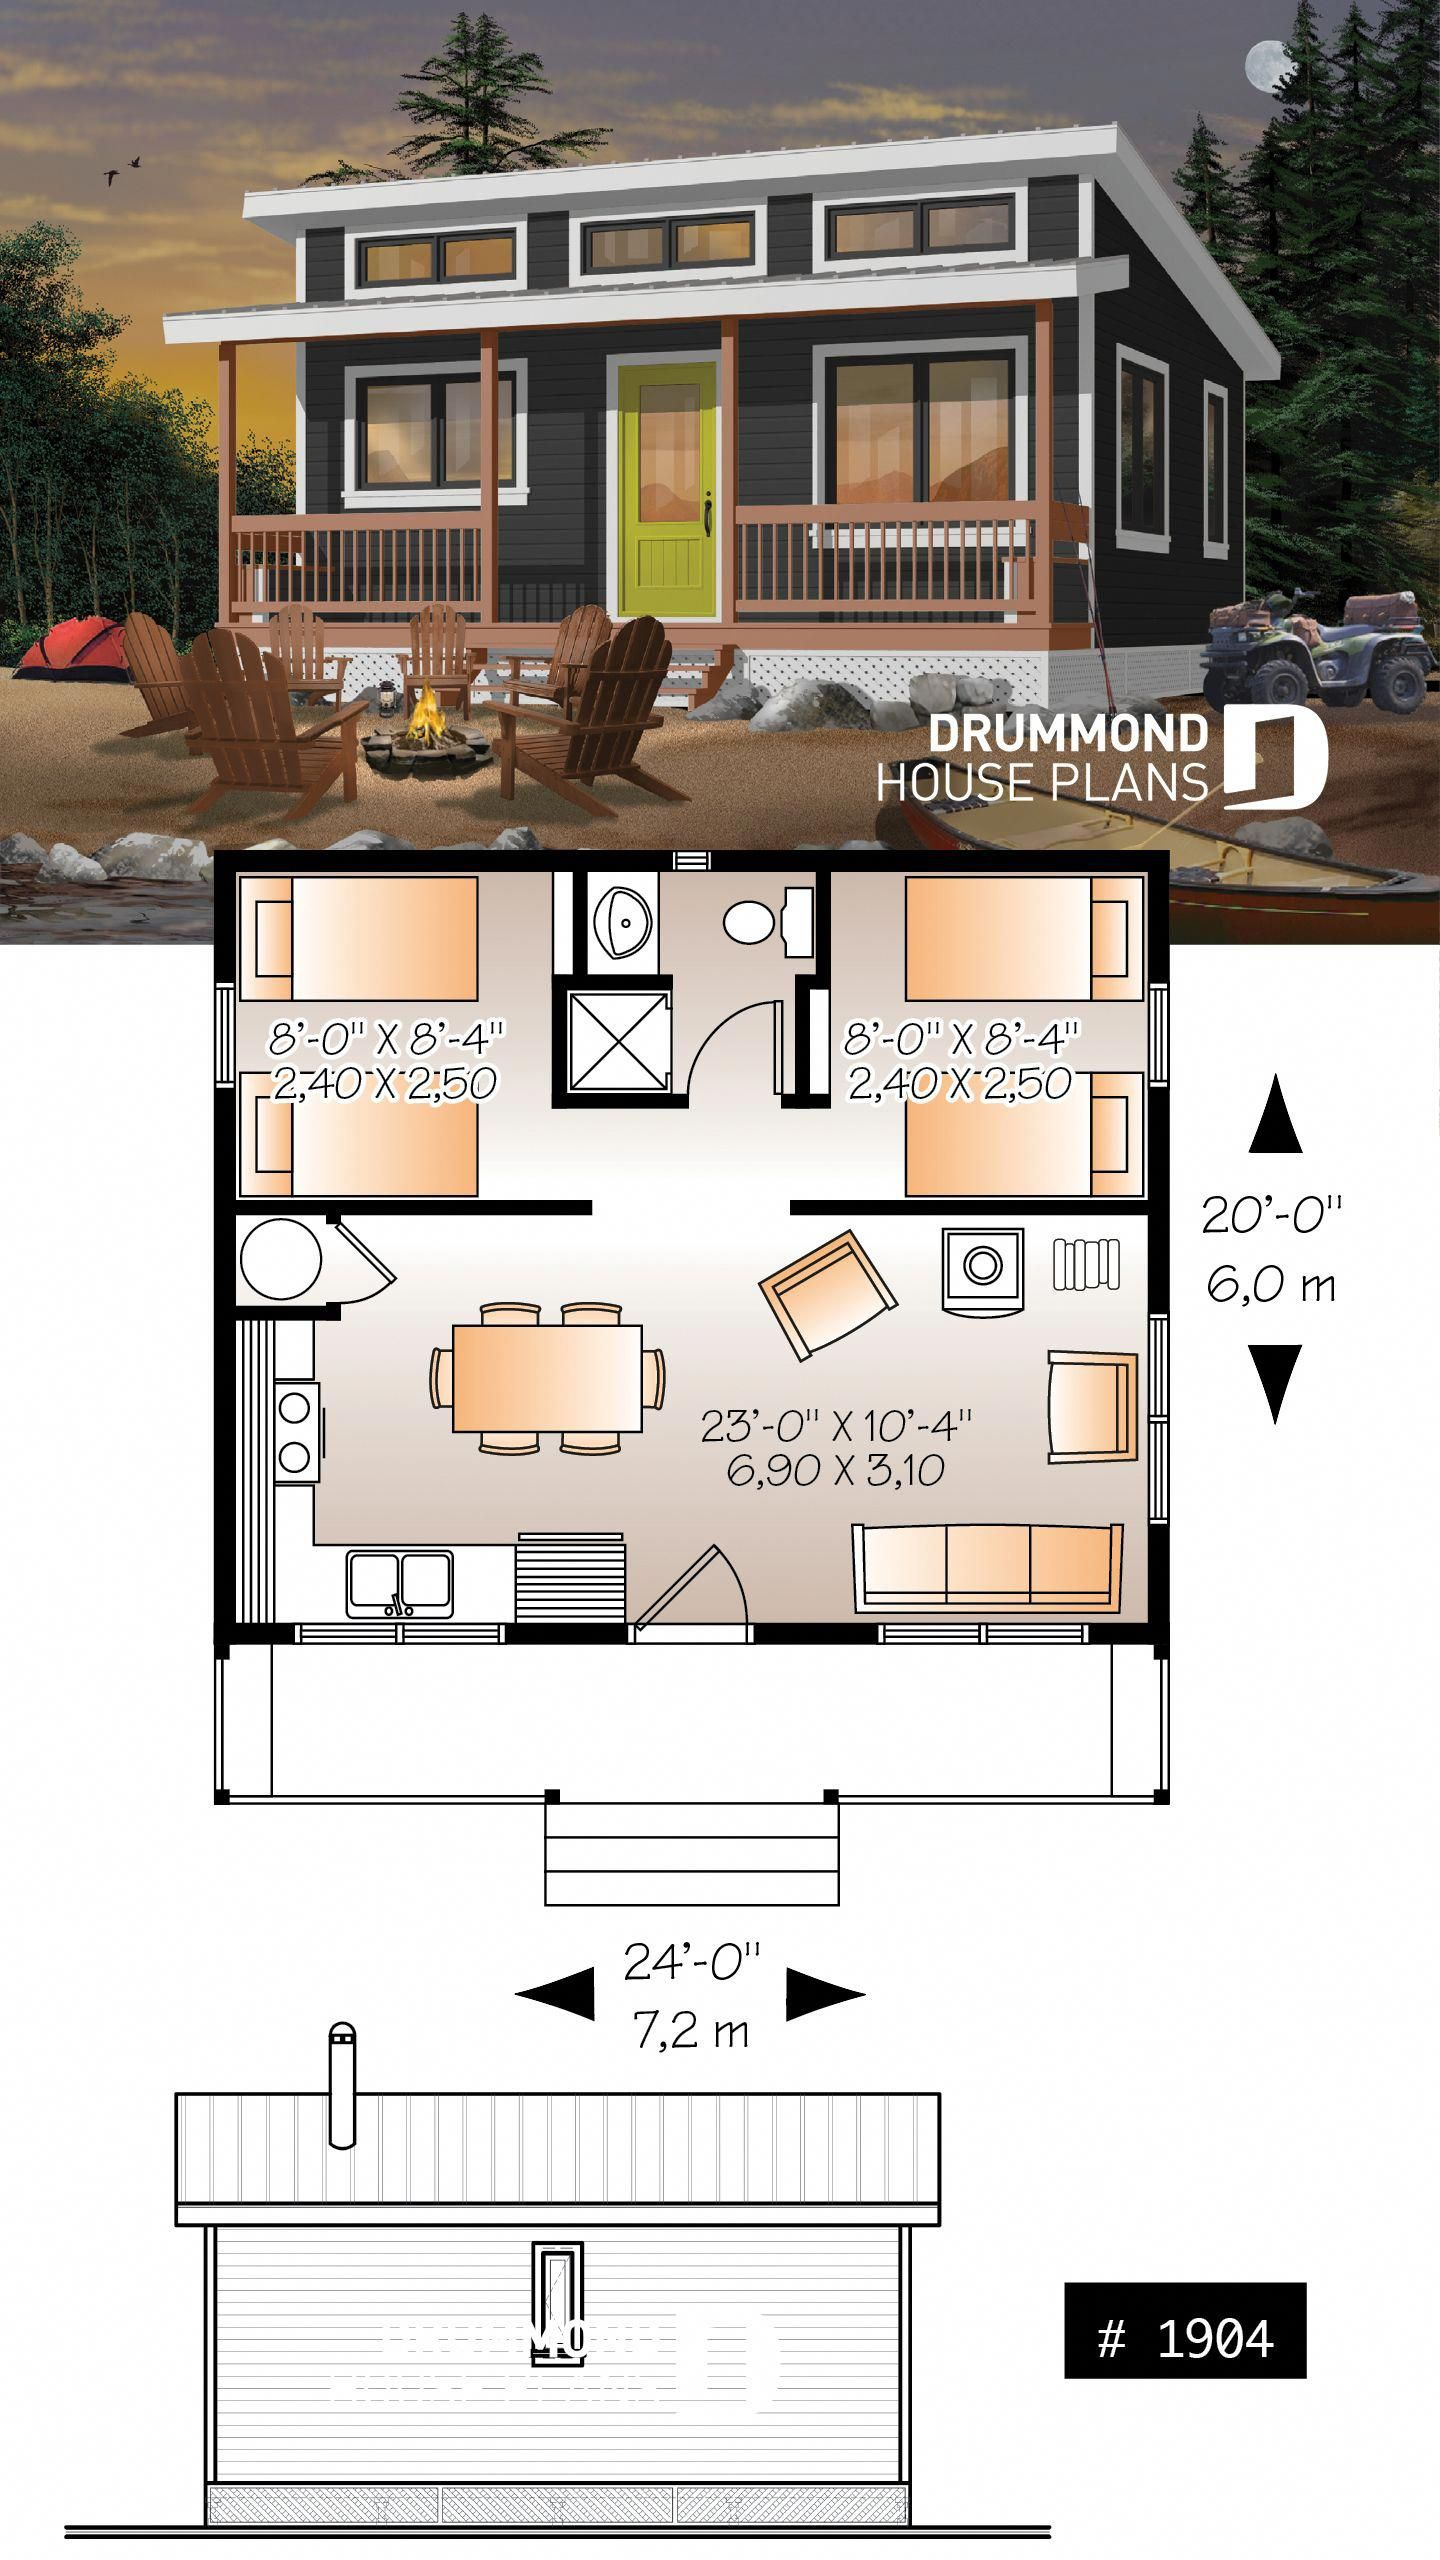 Affordable Small 2 Bedroom Cabin Plan Wood Stove Open Concept Low Budget Construction Cabinideas Cabin House Plans Tiny House Plans Tiny House Cabin